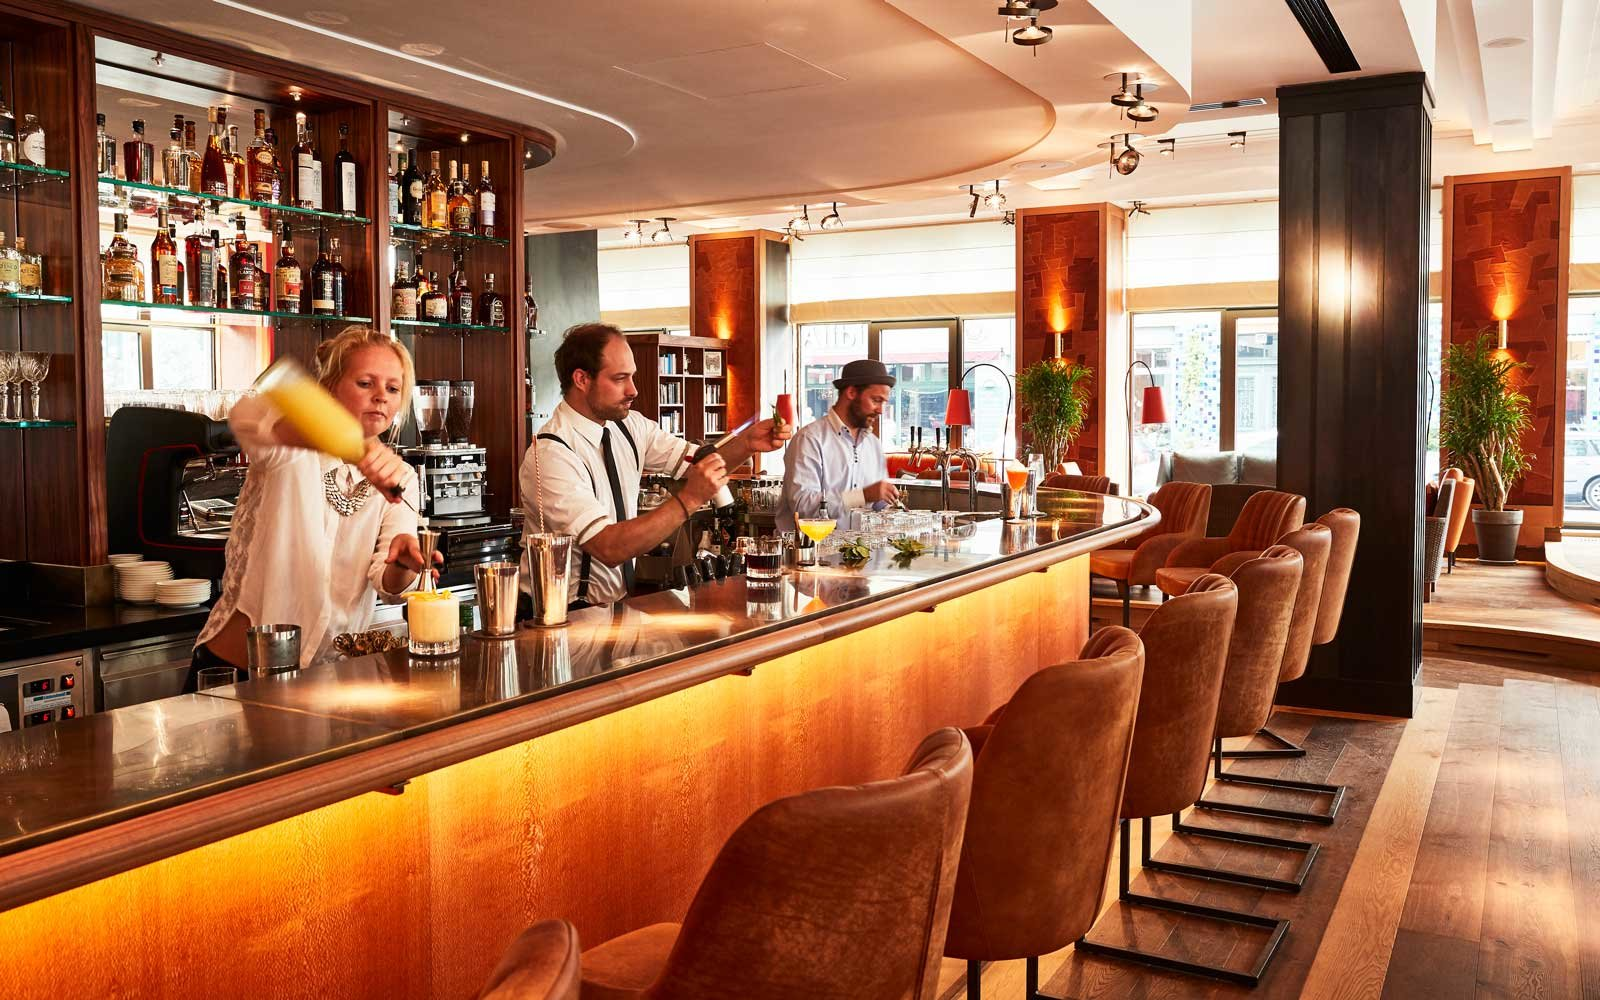 Bar at the Orania Hotel in Berlin, Germany